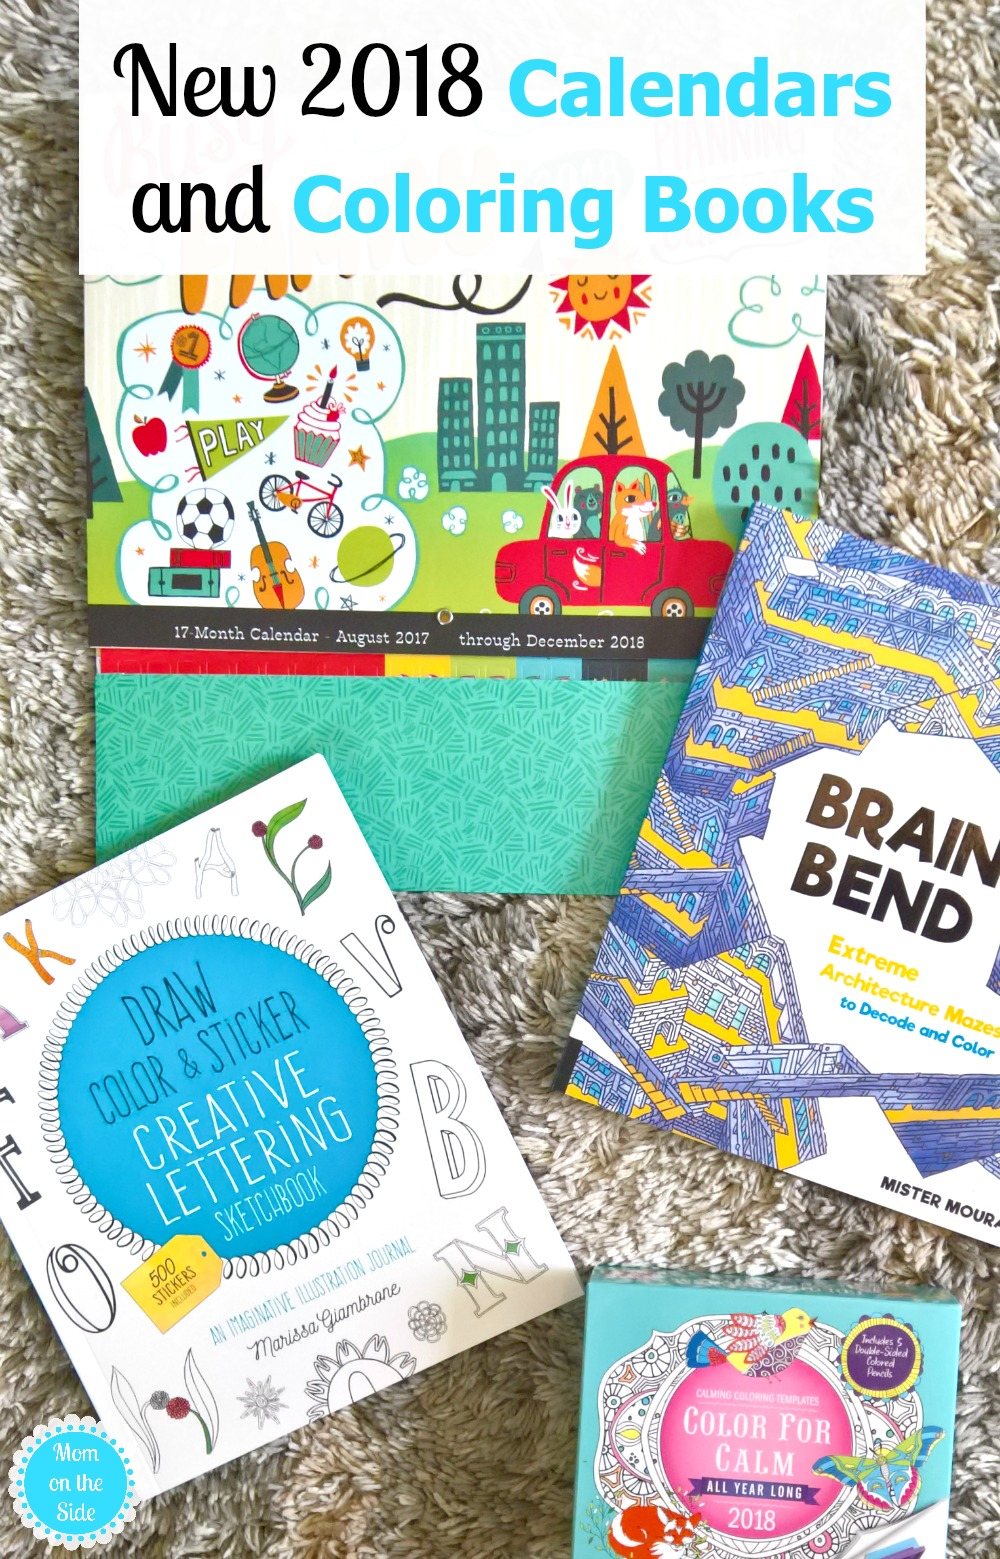 New 2018 Calendars and Coloring Books for the Whole Family